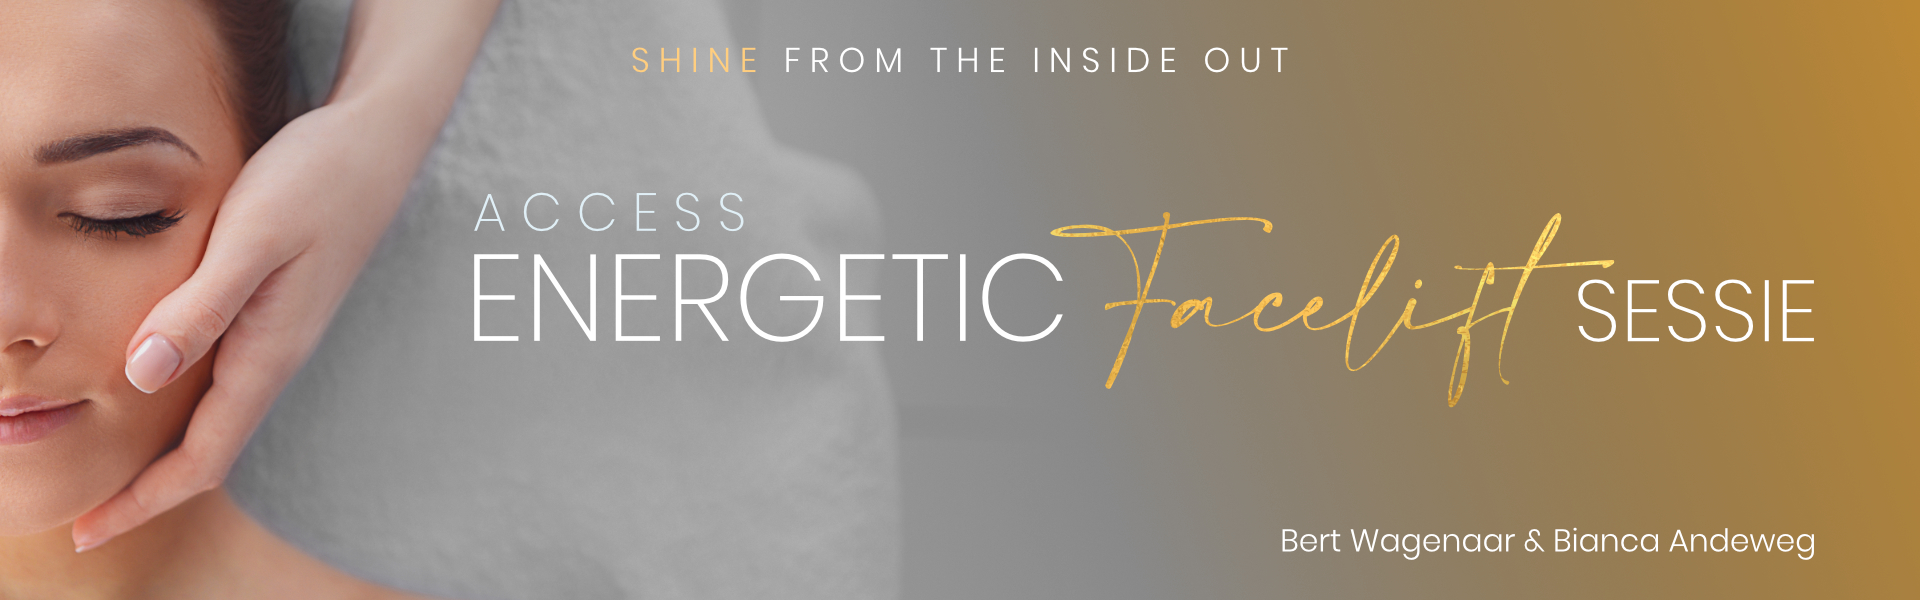 Access Energetic Facelift Sessie